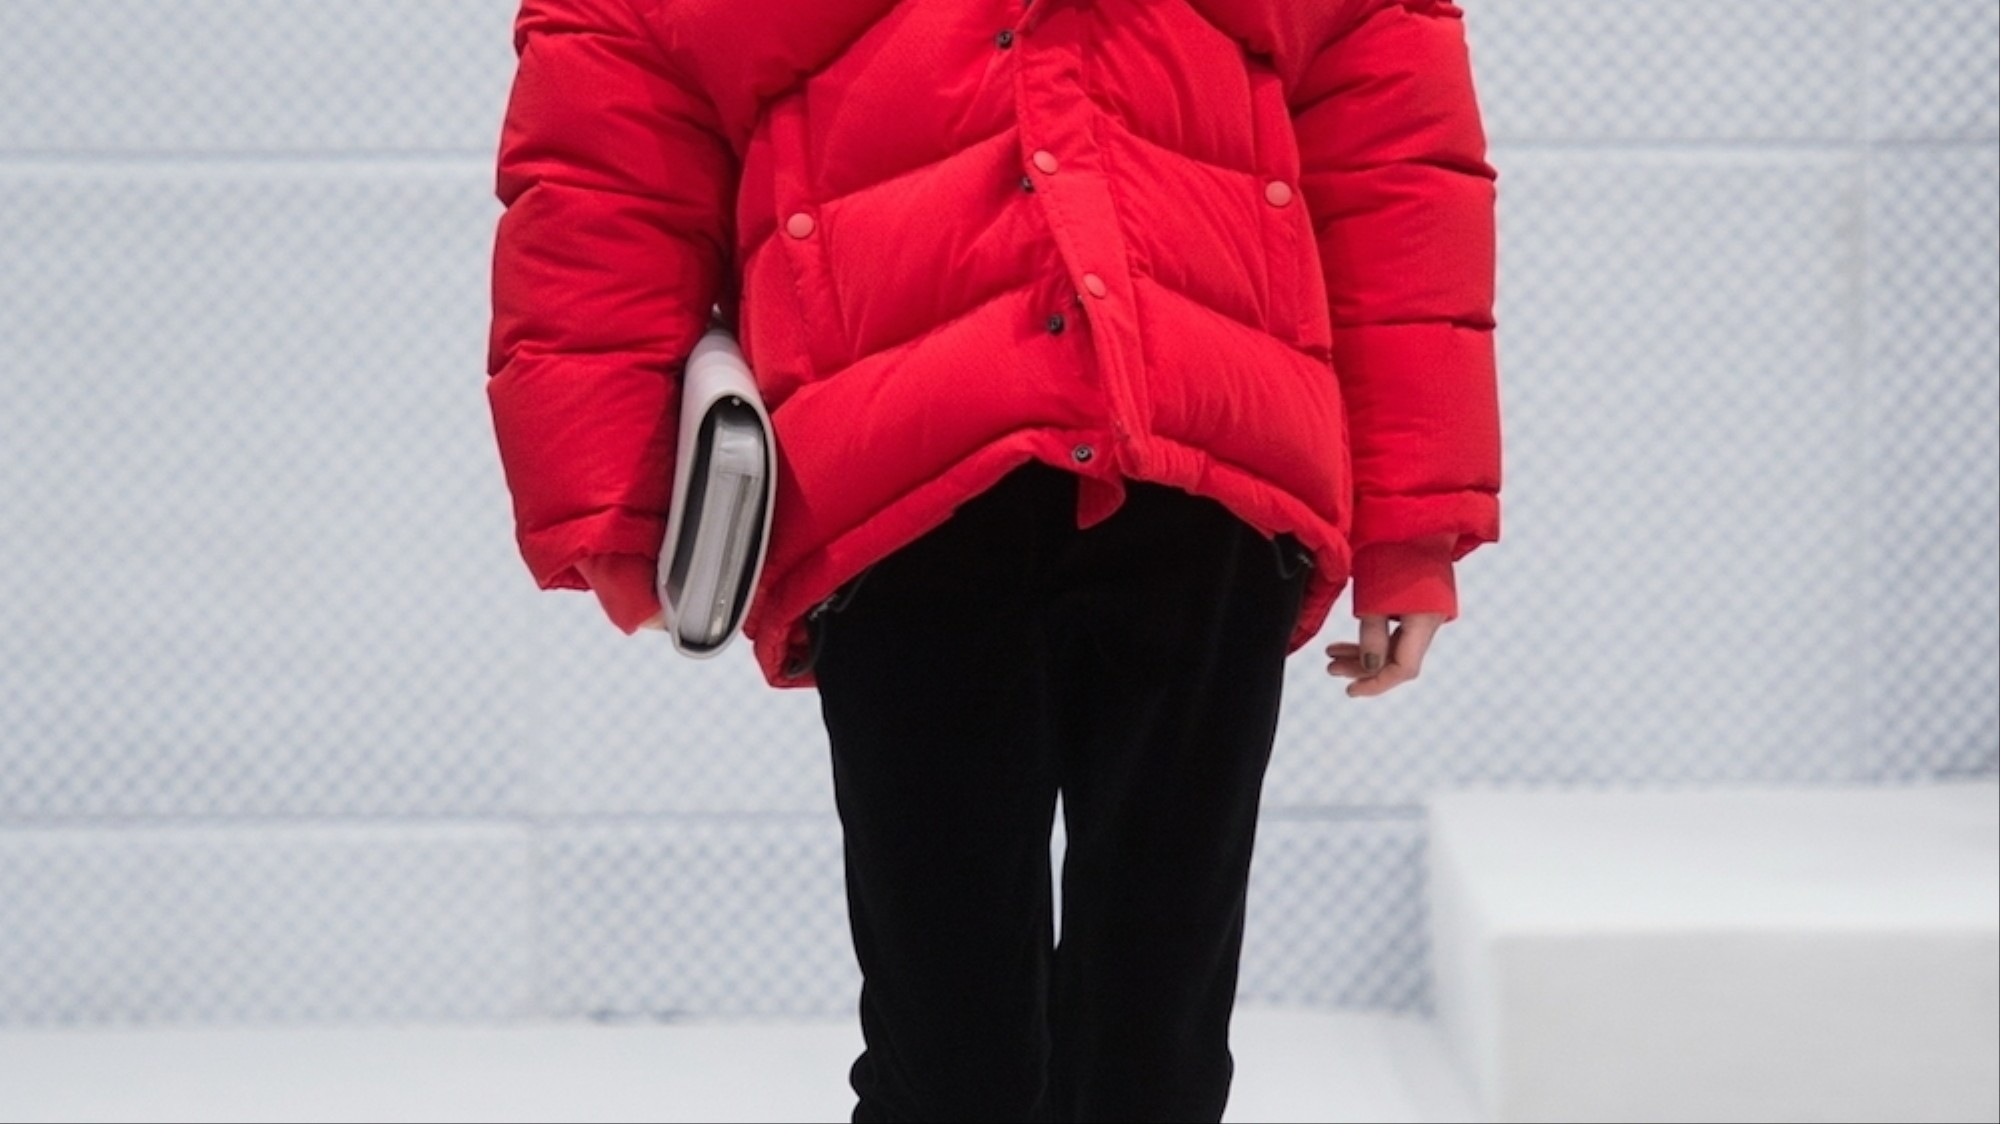 b437fbd13 the rise and rise of the puffer jacket - i-D